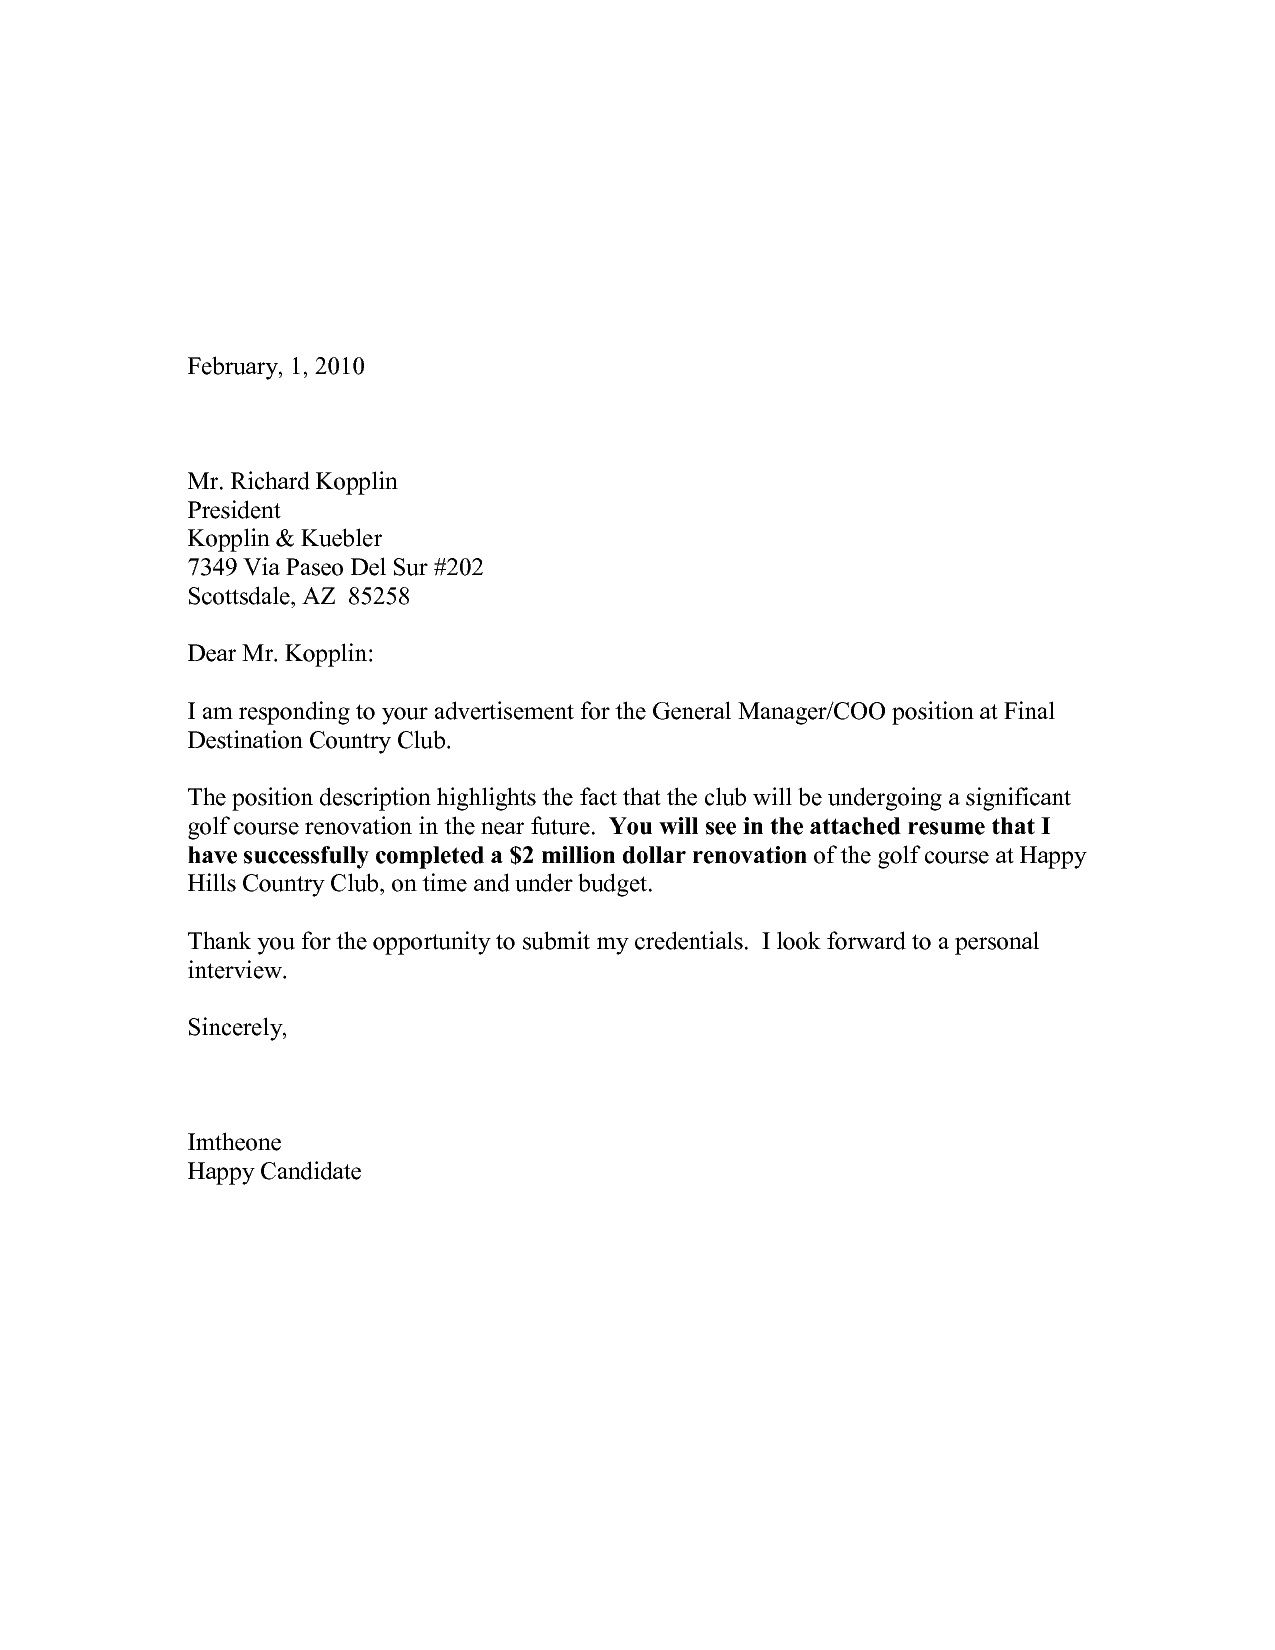 General Resume Cover Letter Template Addictionary